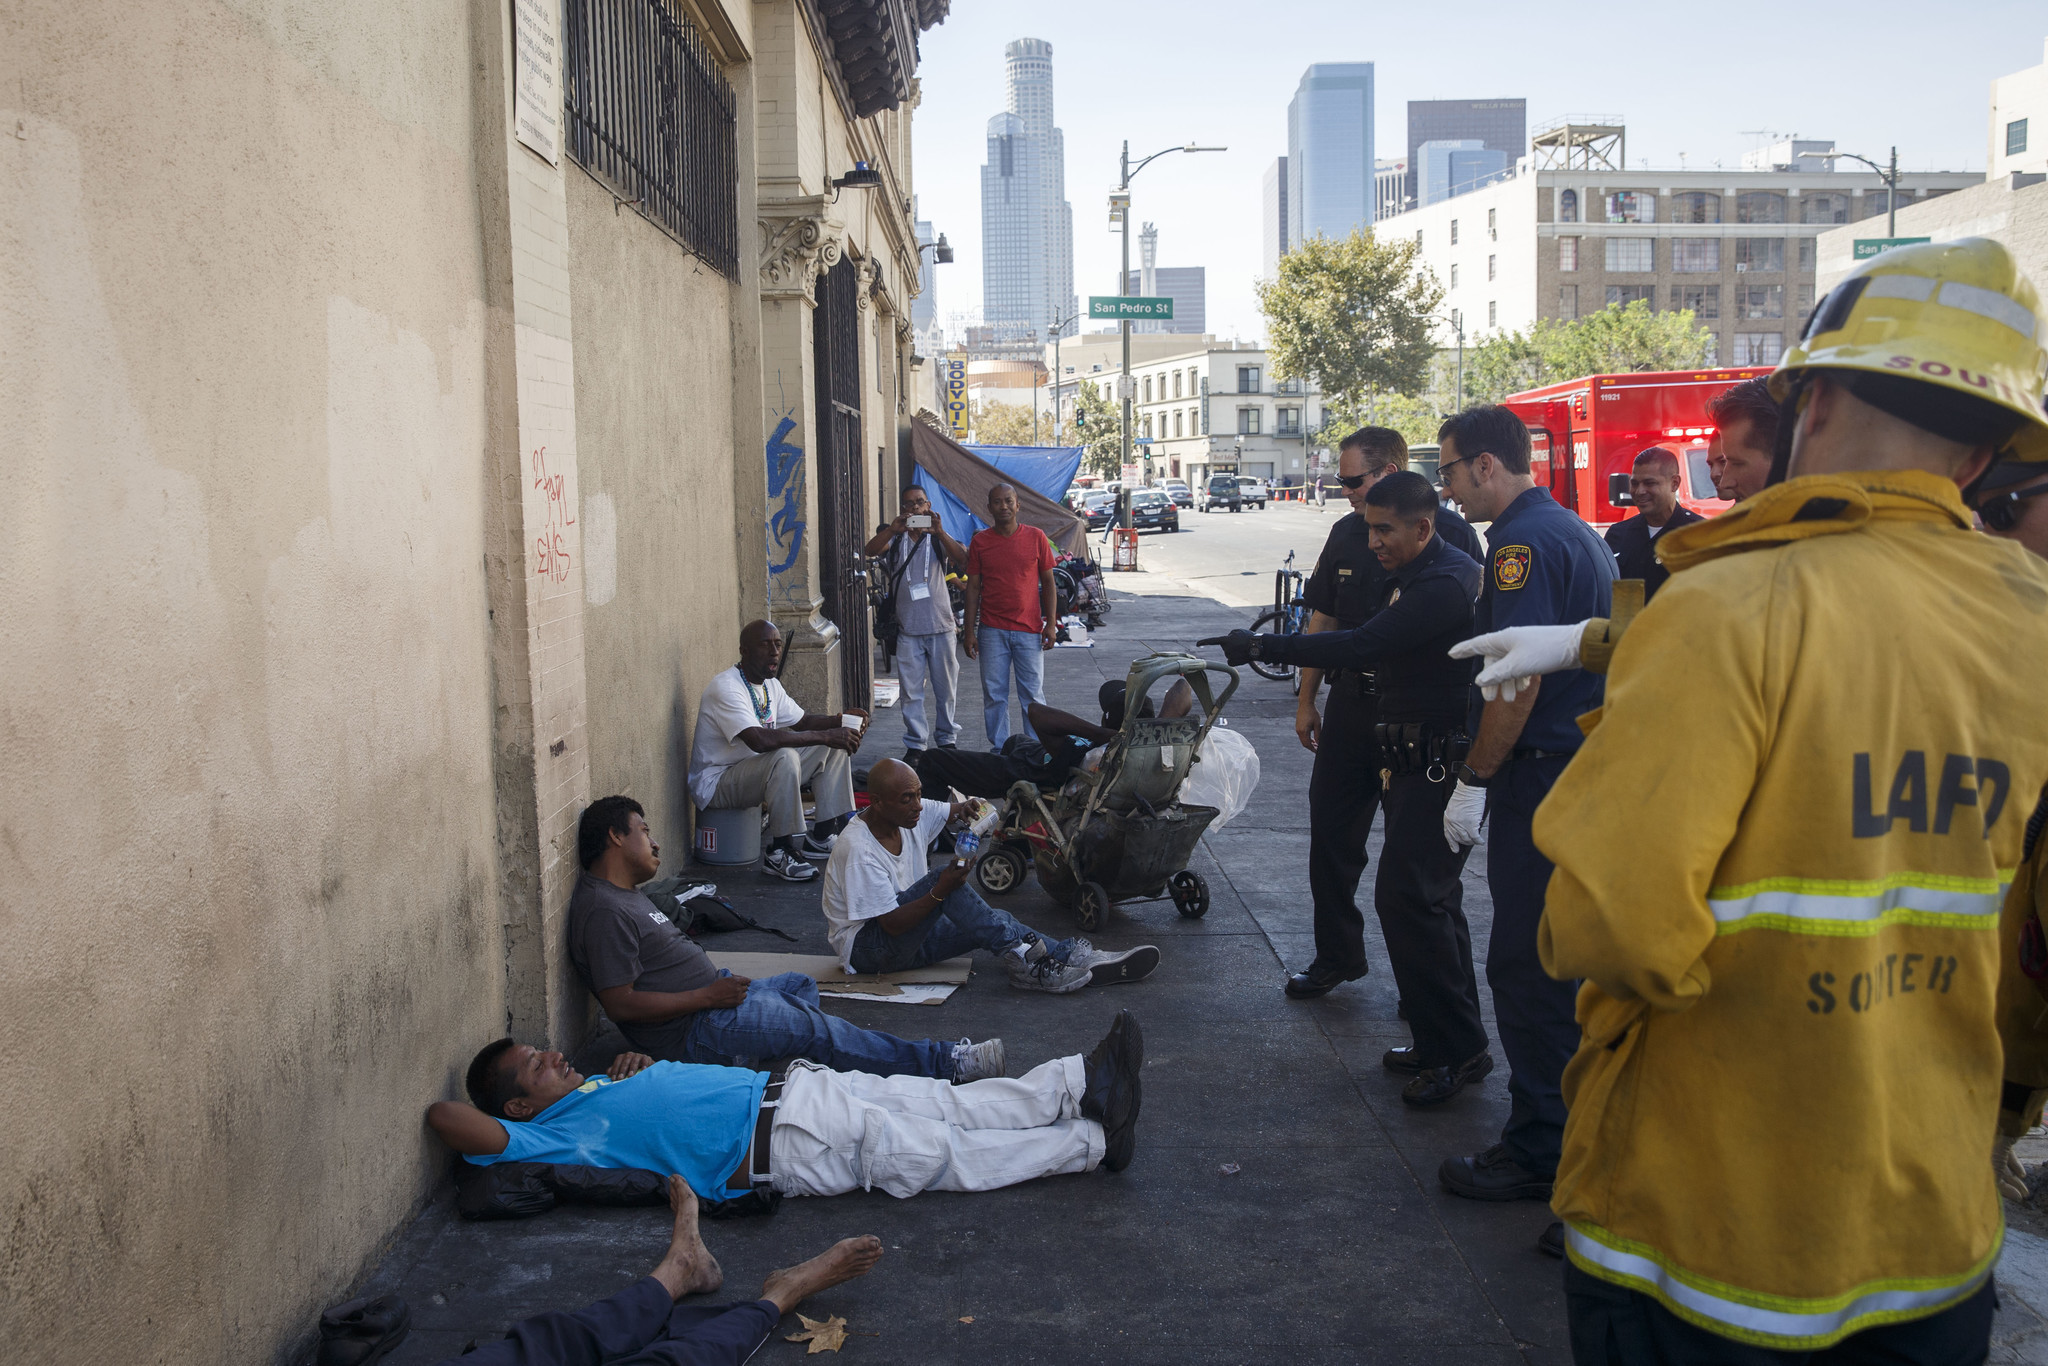 Gentrification on skid row? We should be so lucky - LA Times